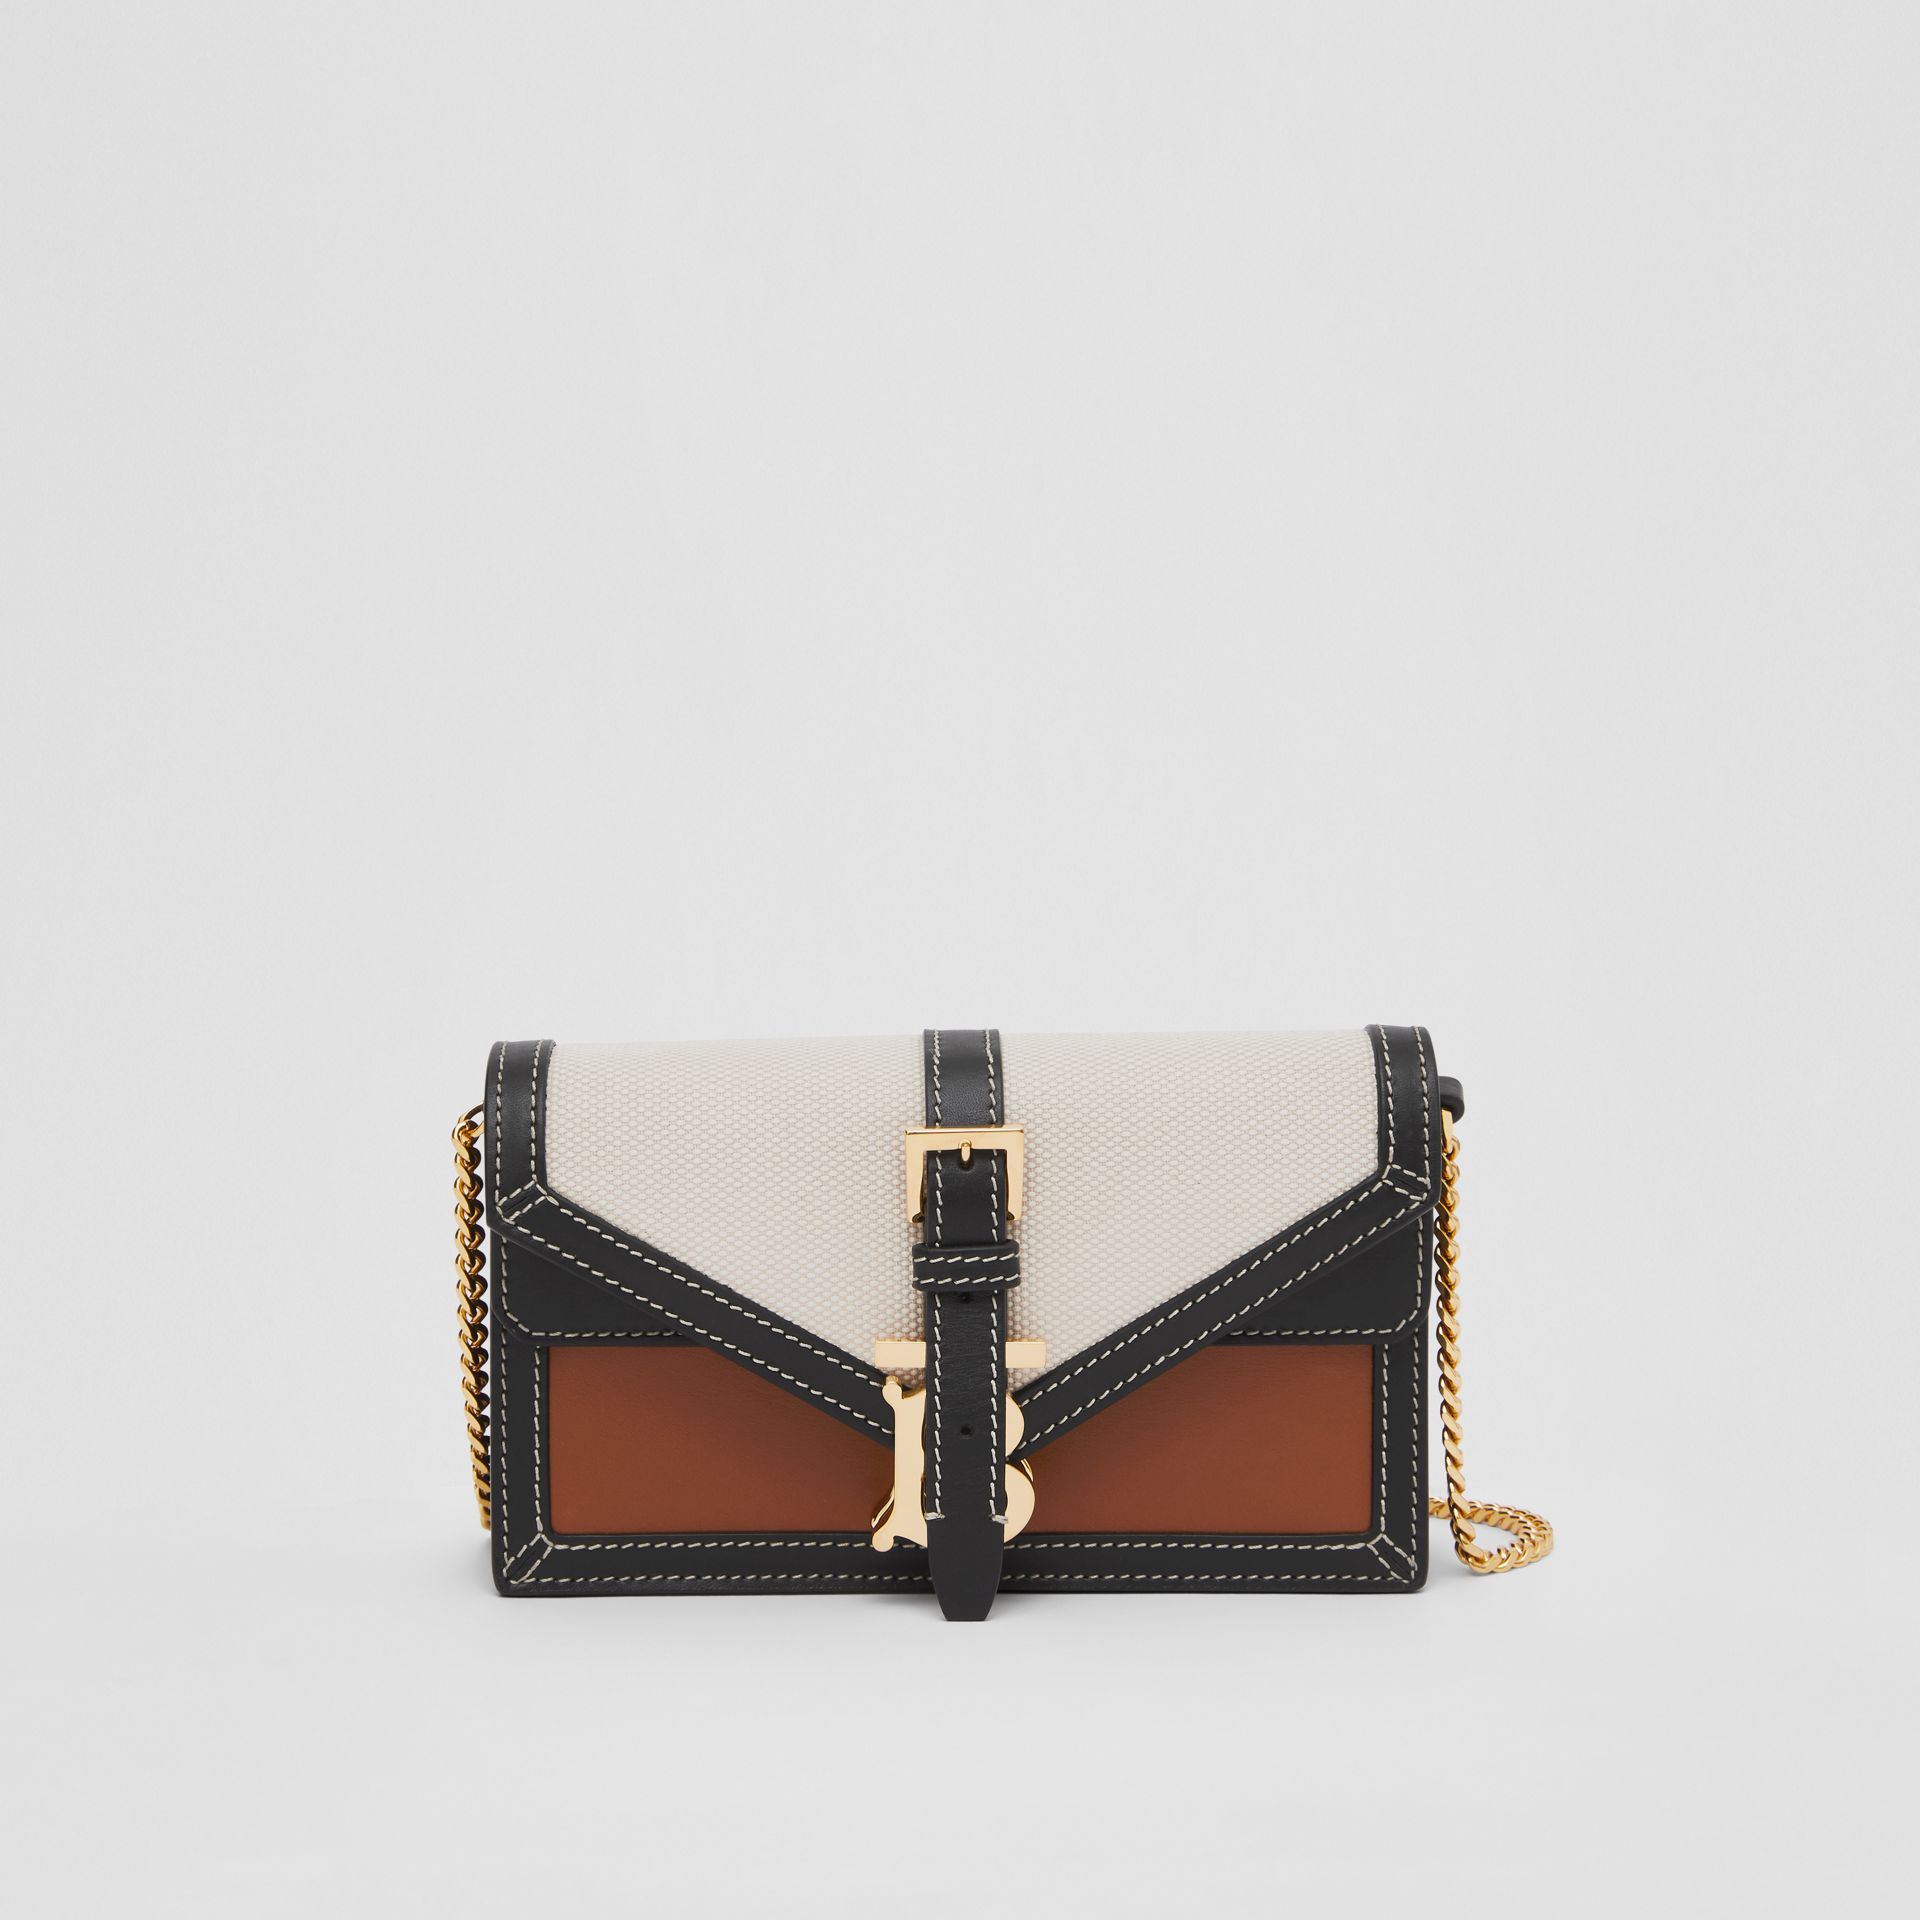 Mini Canvas and Leather TB Envelope Clutch in Tan - Women | Burberry Canada - gallery image 0